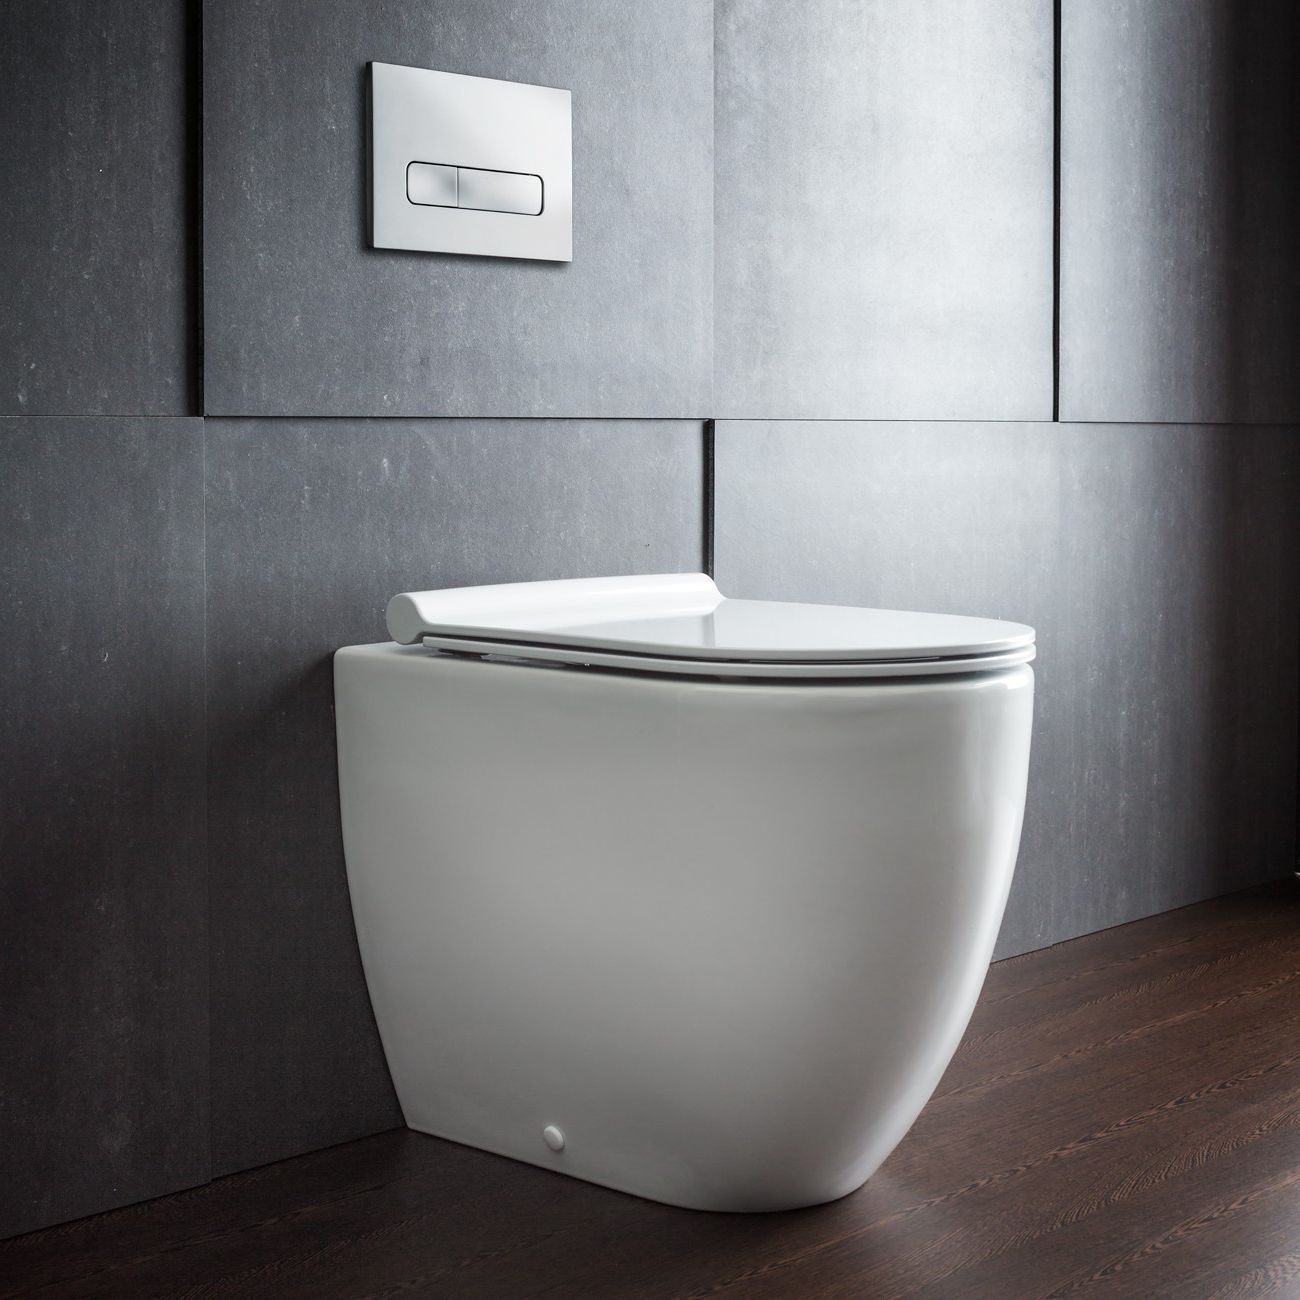 Bathroom , Sleek Bathroom Design with Wall Mounted Toilet : Wall ...